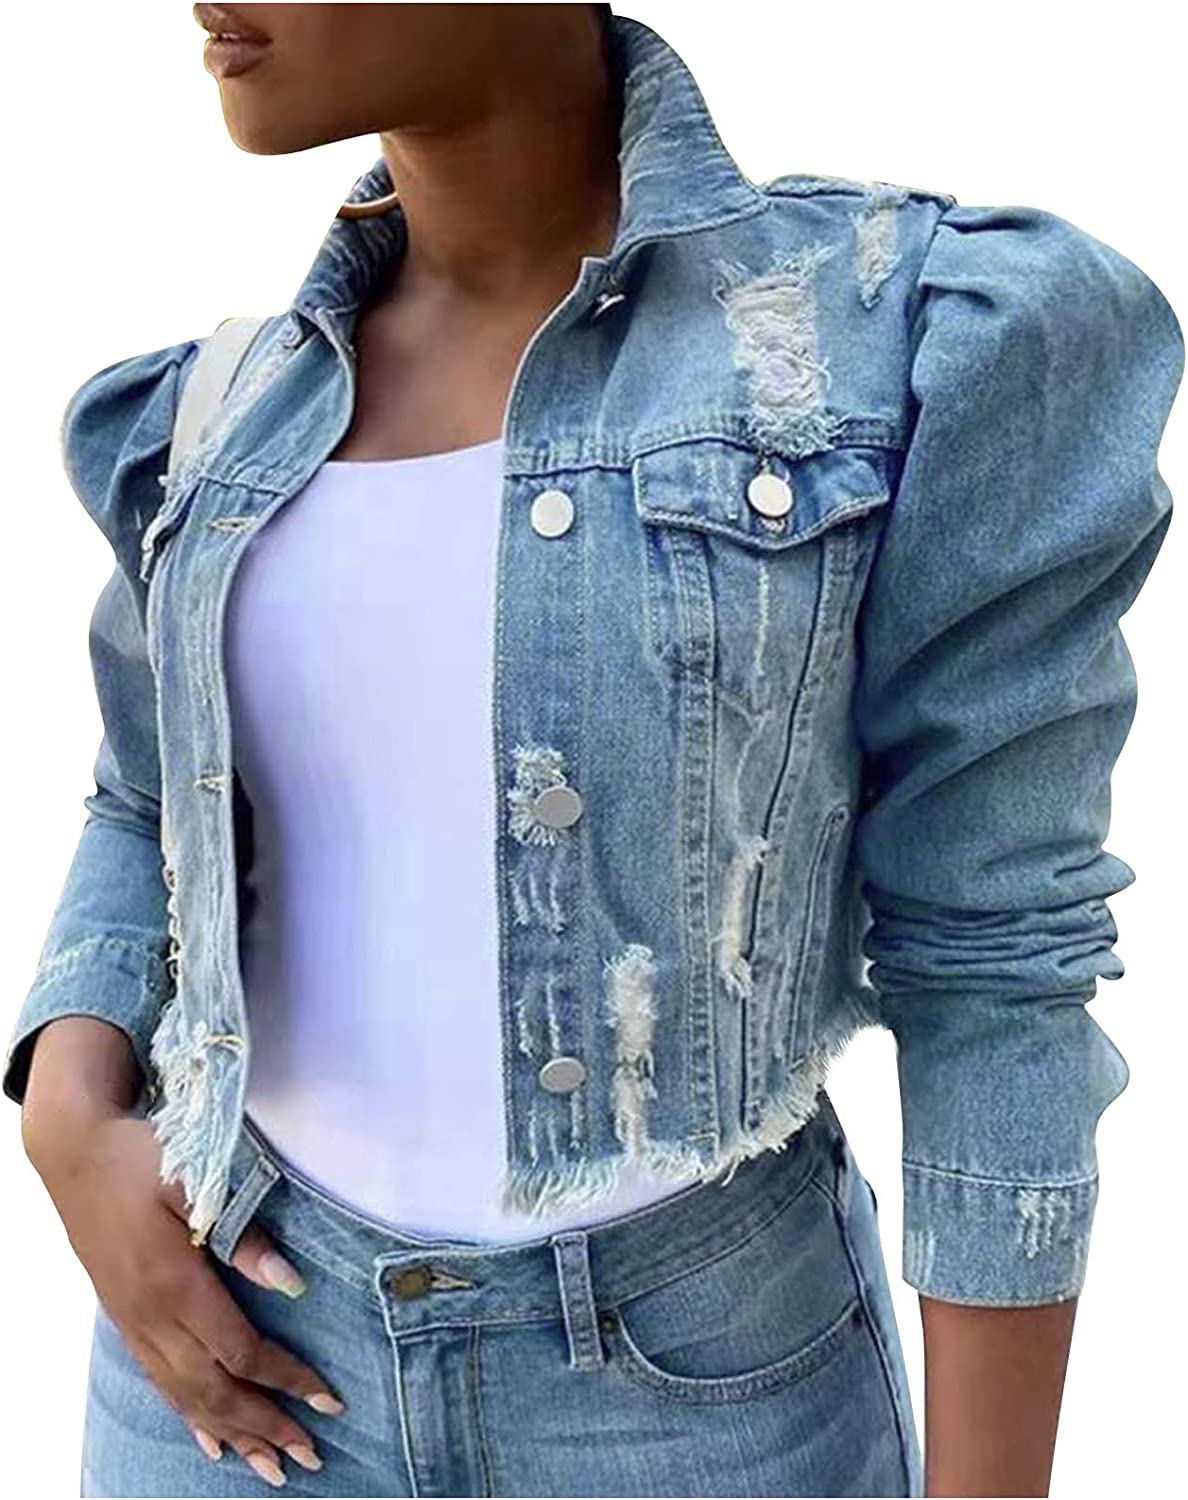 Xinantime Women's Jean Jacket Distressed Washed Coat Button Down Long Sleeve Classic Denim Jacket with Pockets